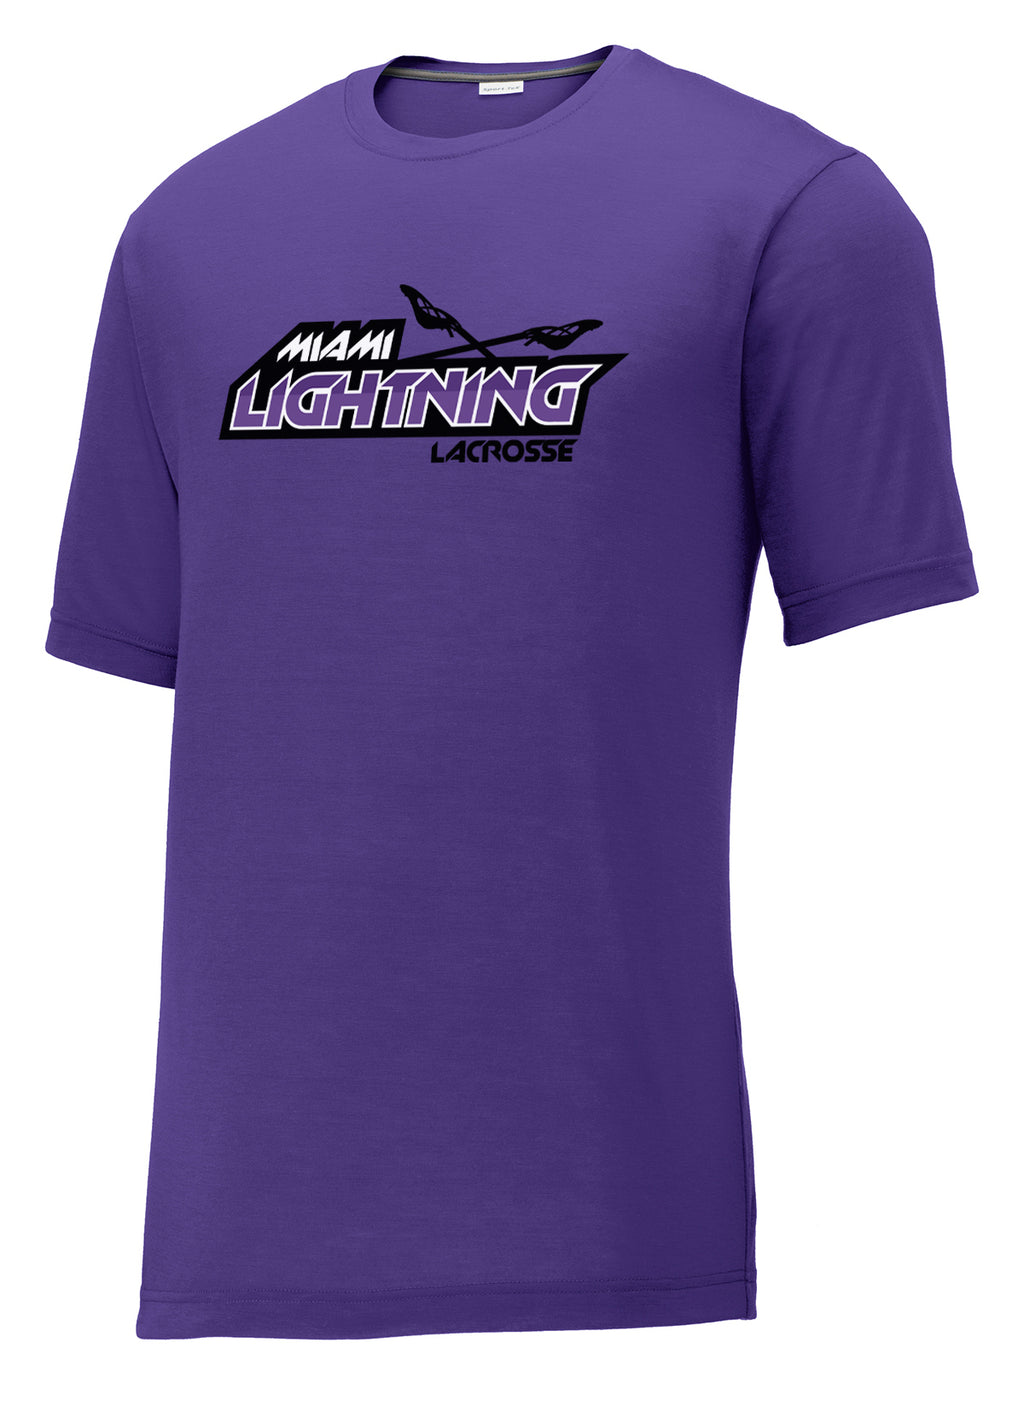 Miami Lightning Purple CottonTouch Performance T-Shirt